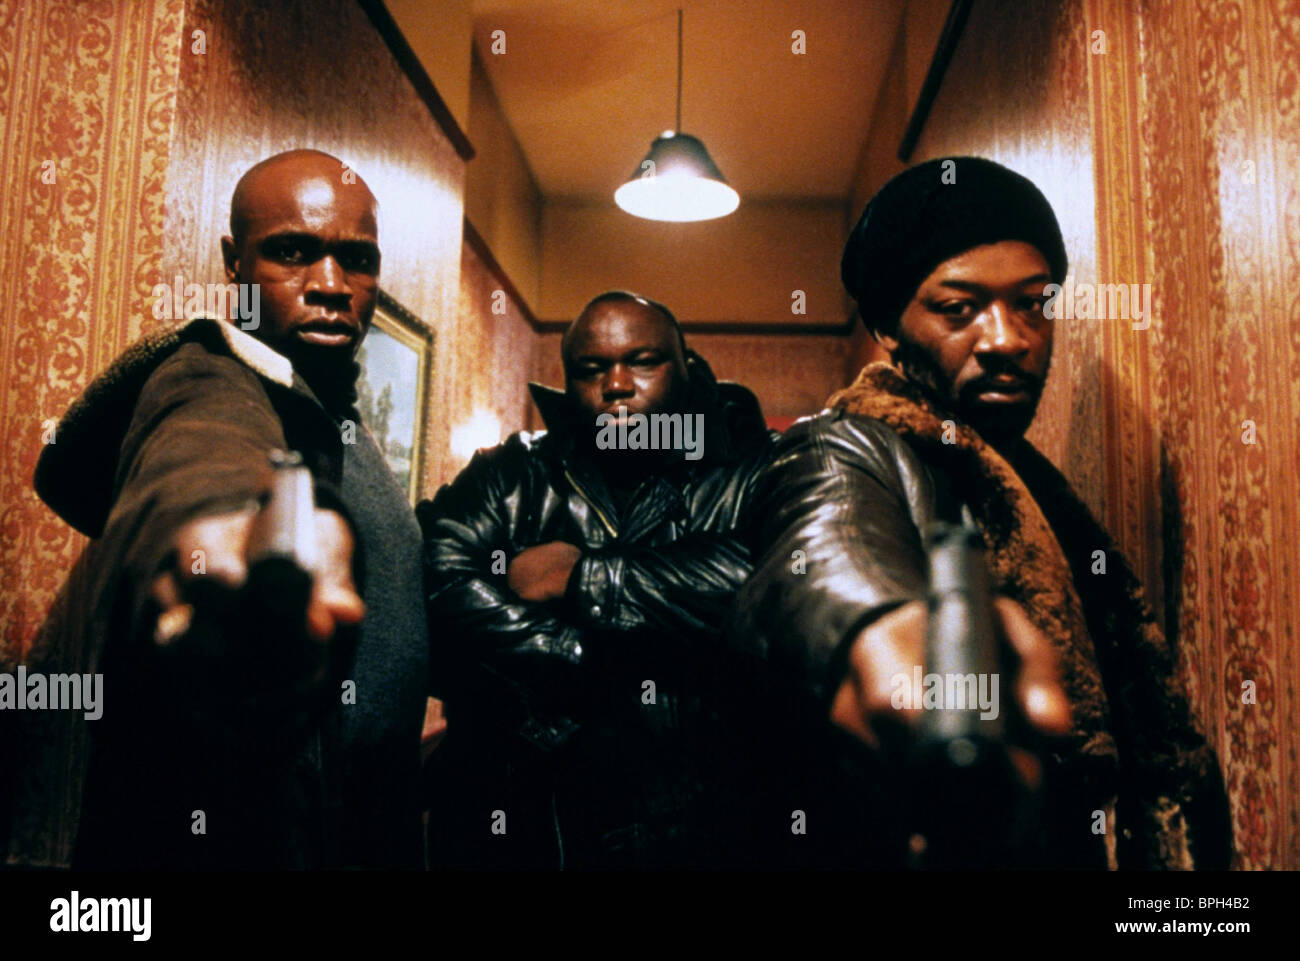 ROBBIE JAMES ADE LENNIE JAMES SNATCH (2000) - Stock Image